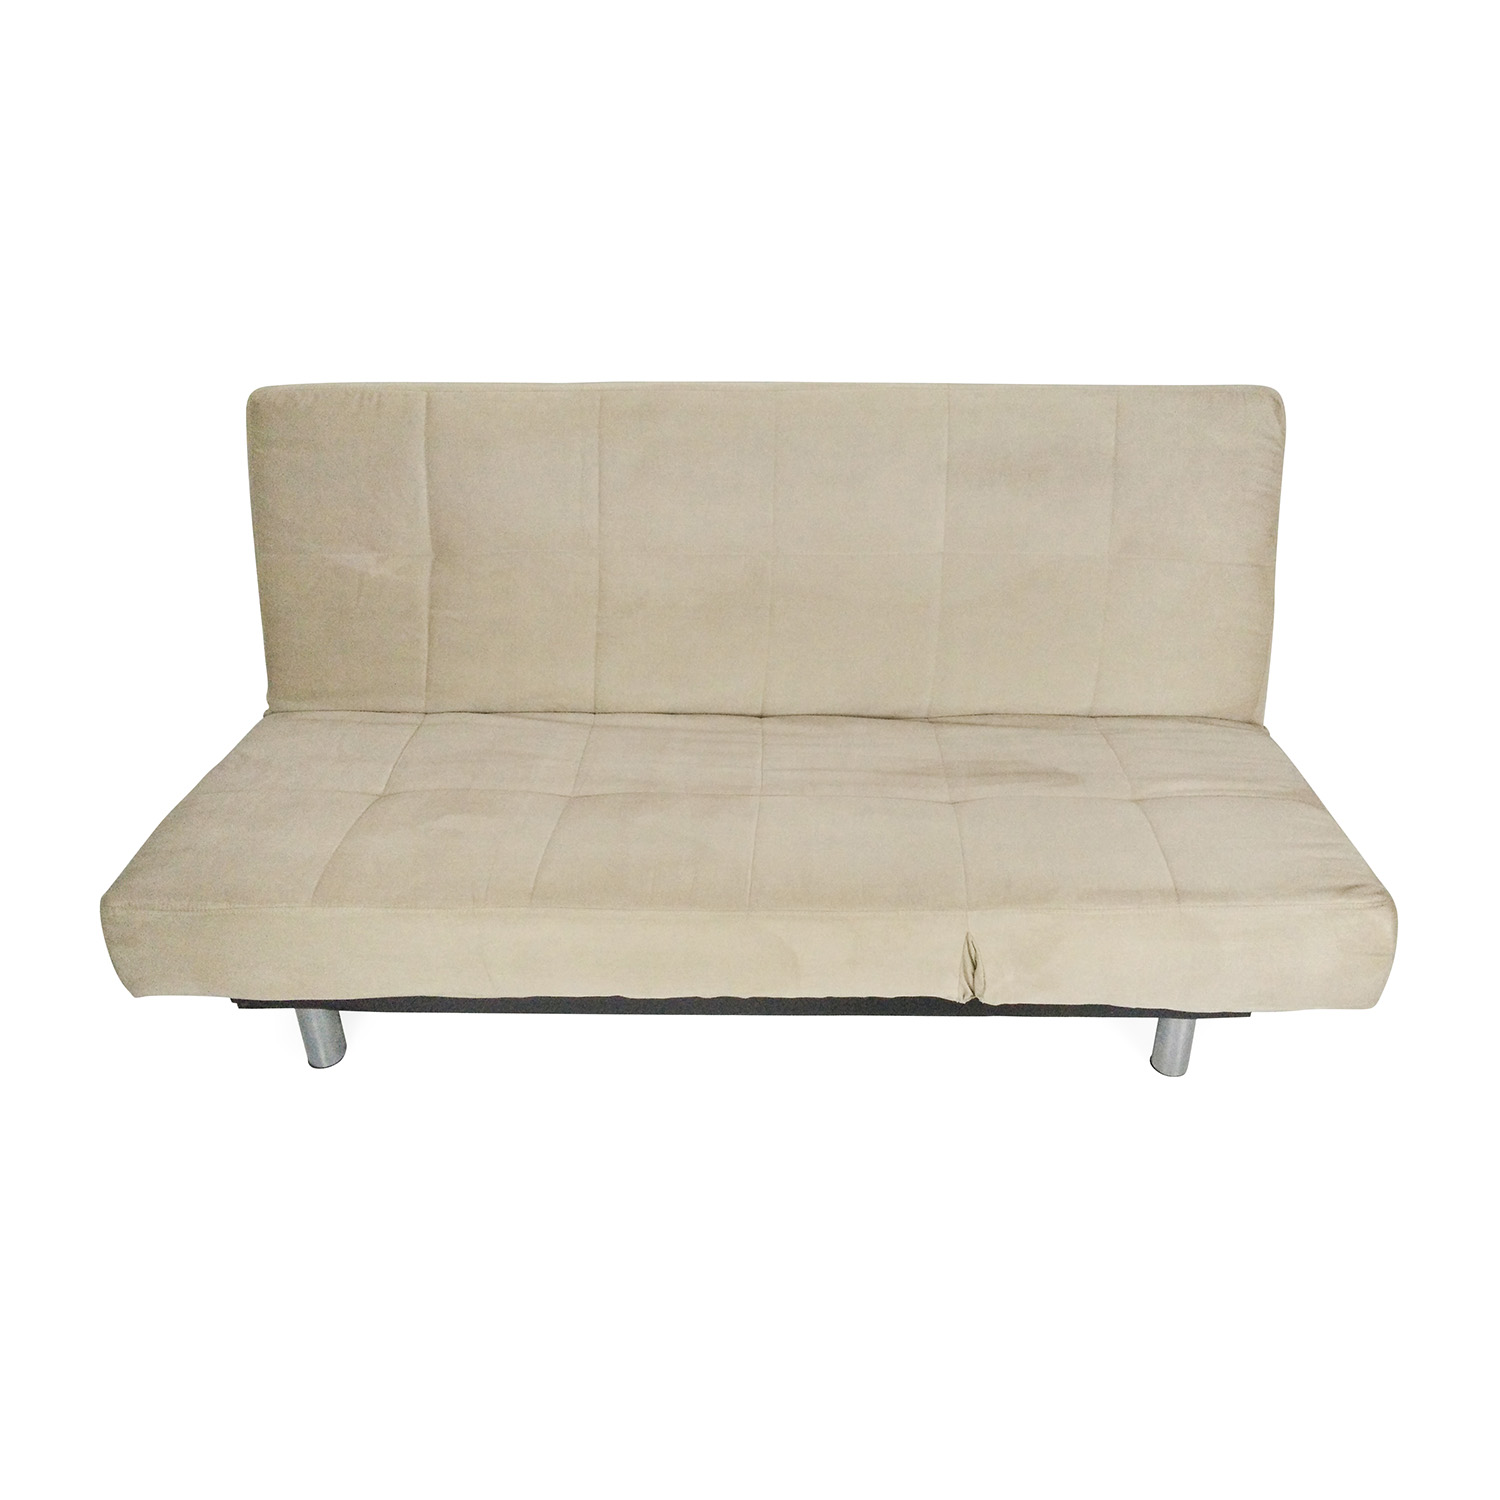 sofa seconds sizes uk second hand futon  roselawnlutheran